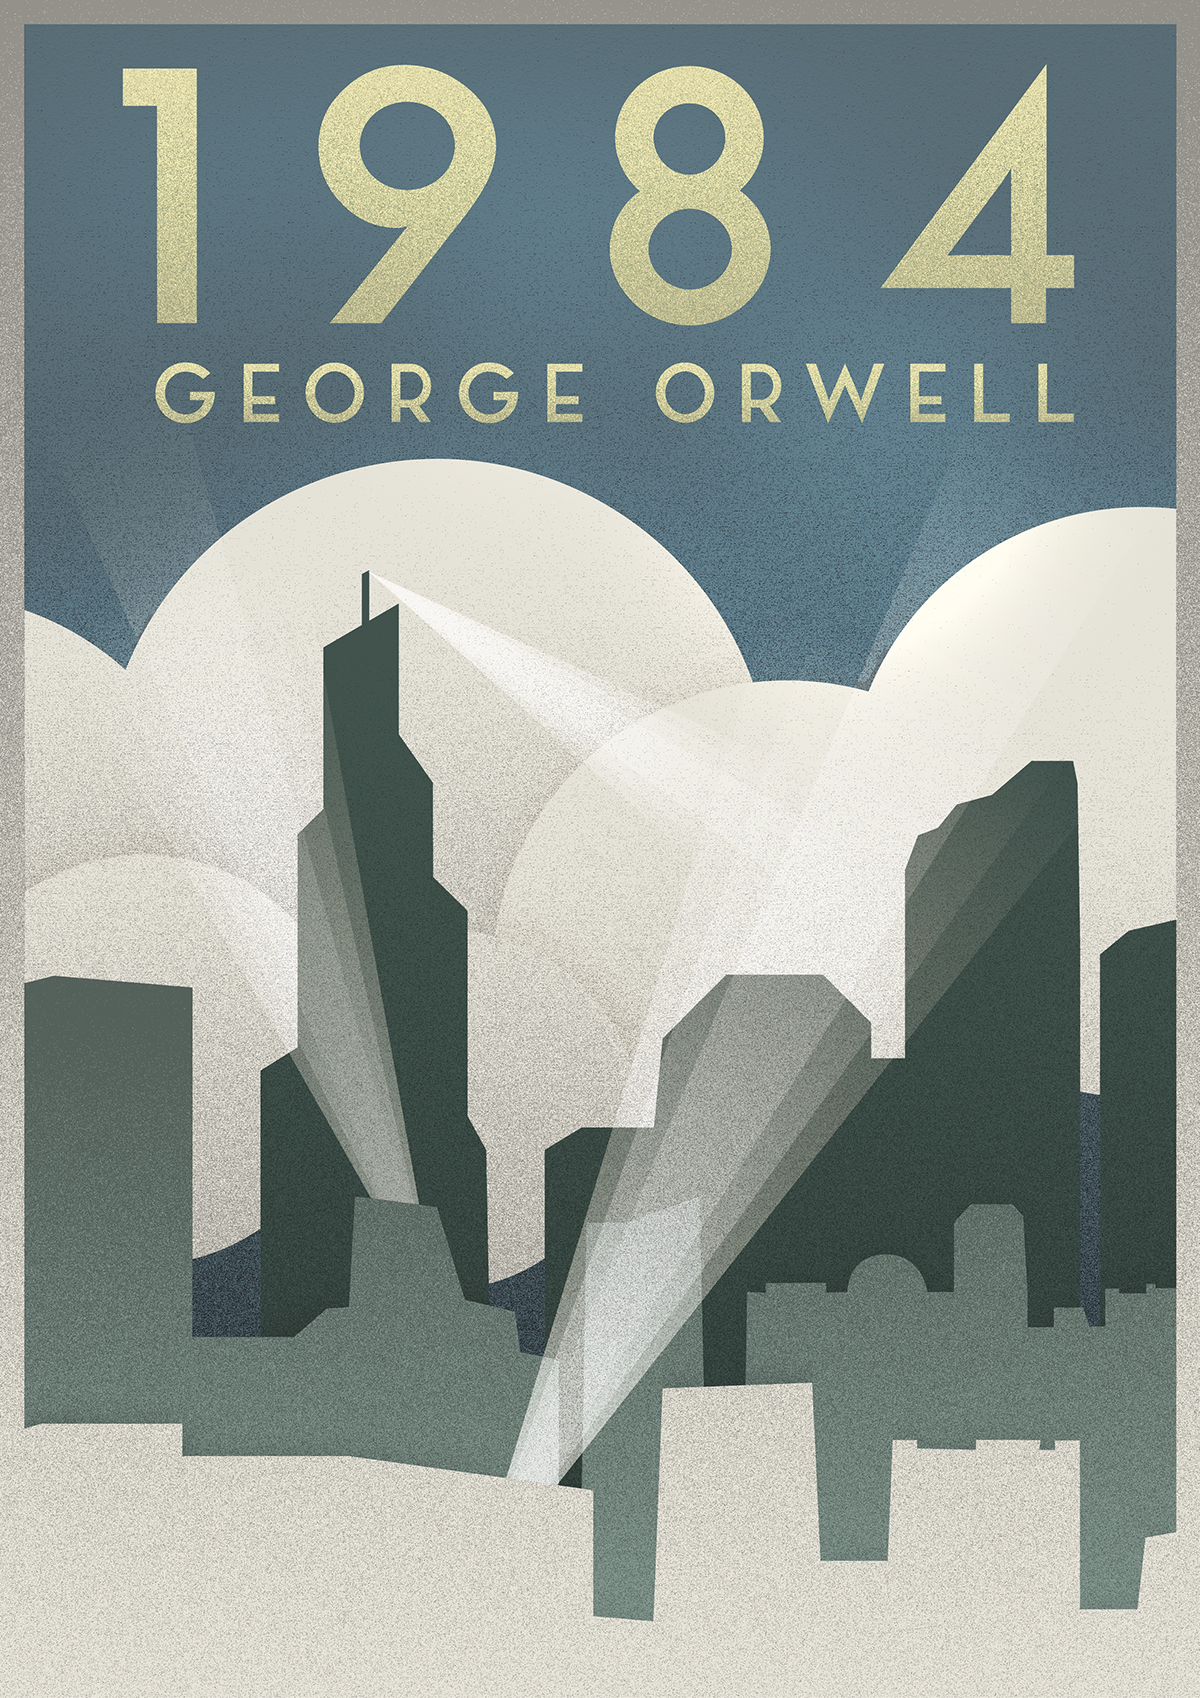 George Orwell 1984 Art Deco Poster On Behance